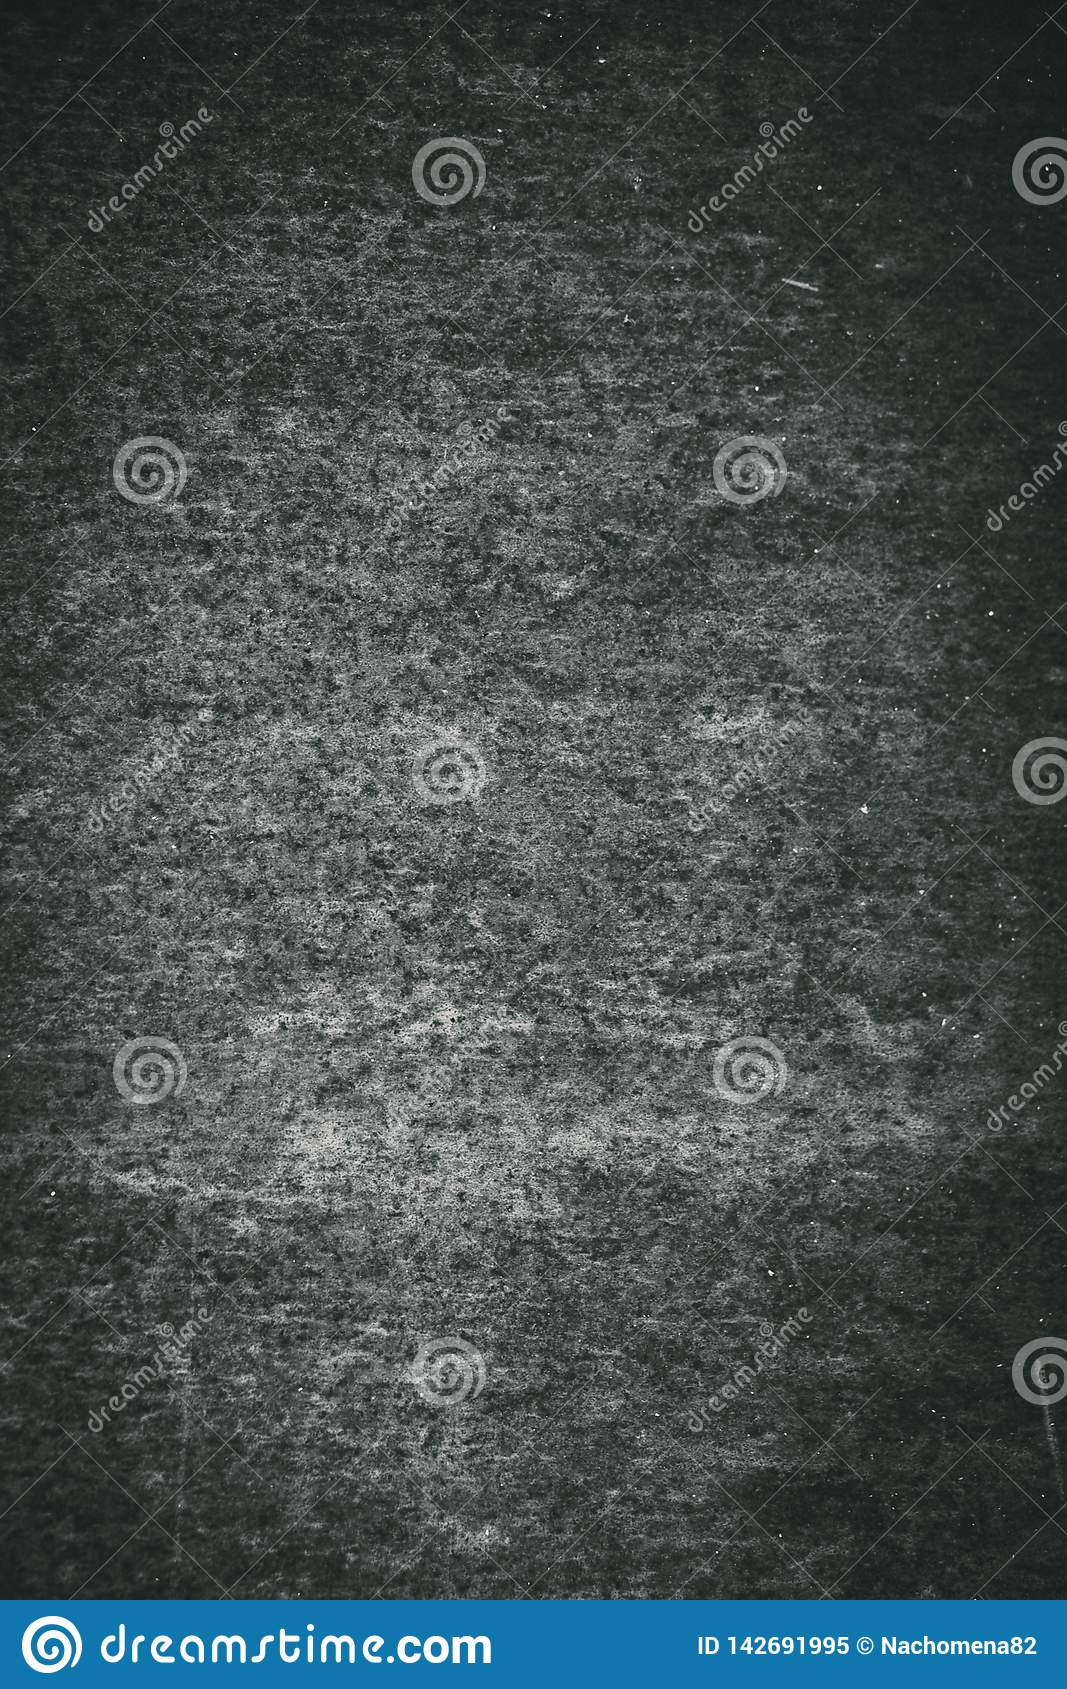 Dark Grey Abstract Texture And Background For Design